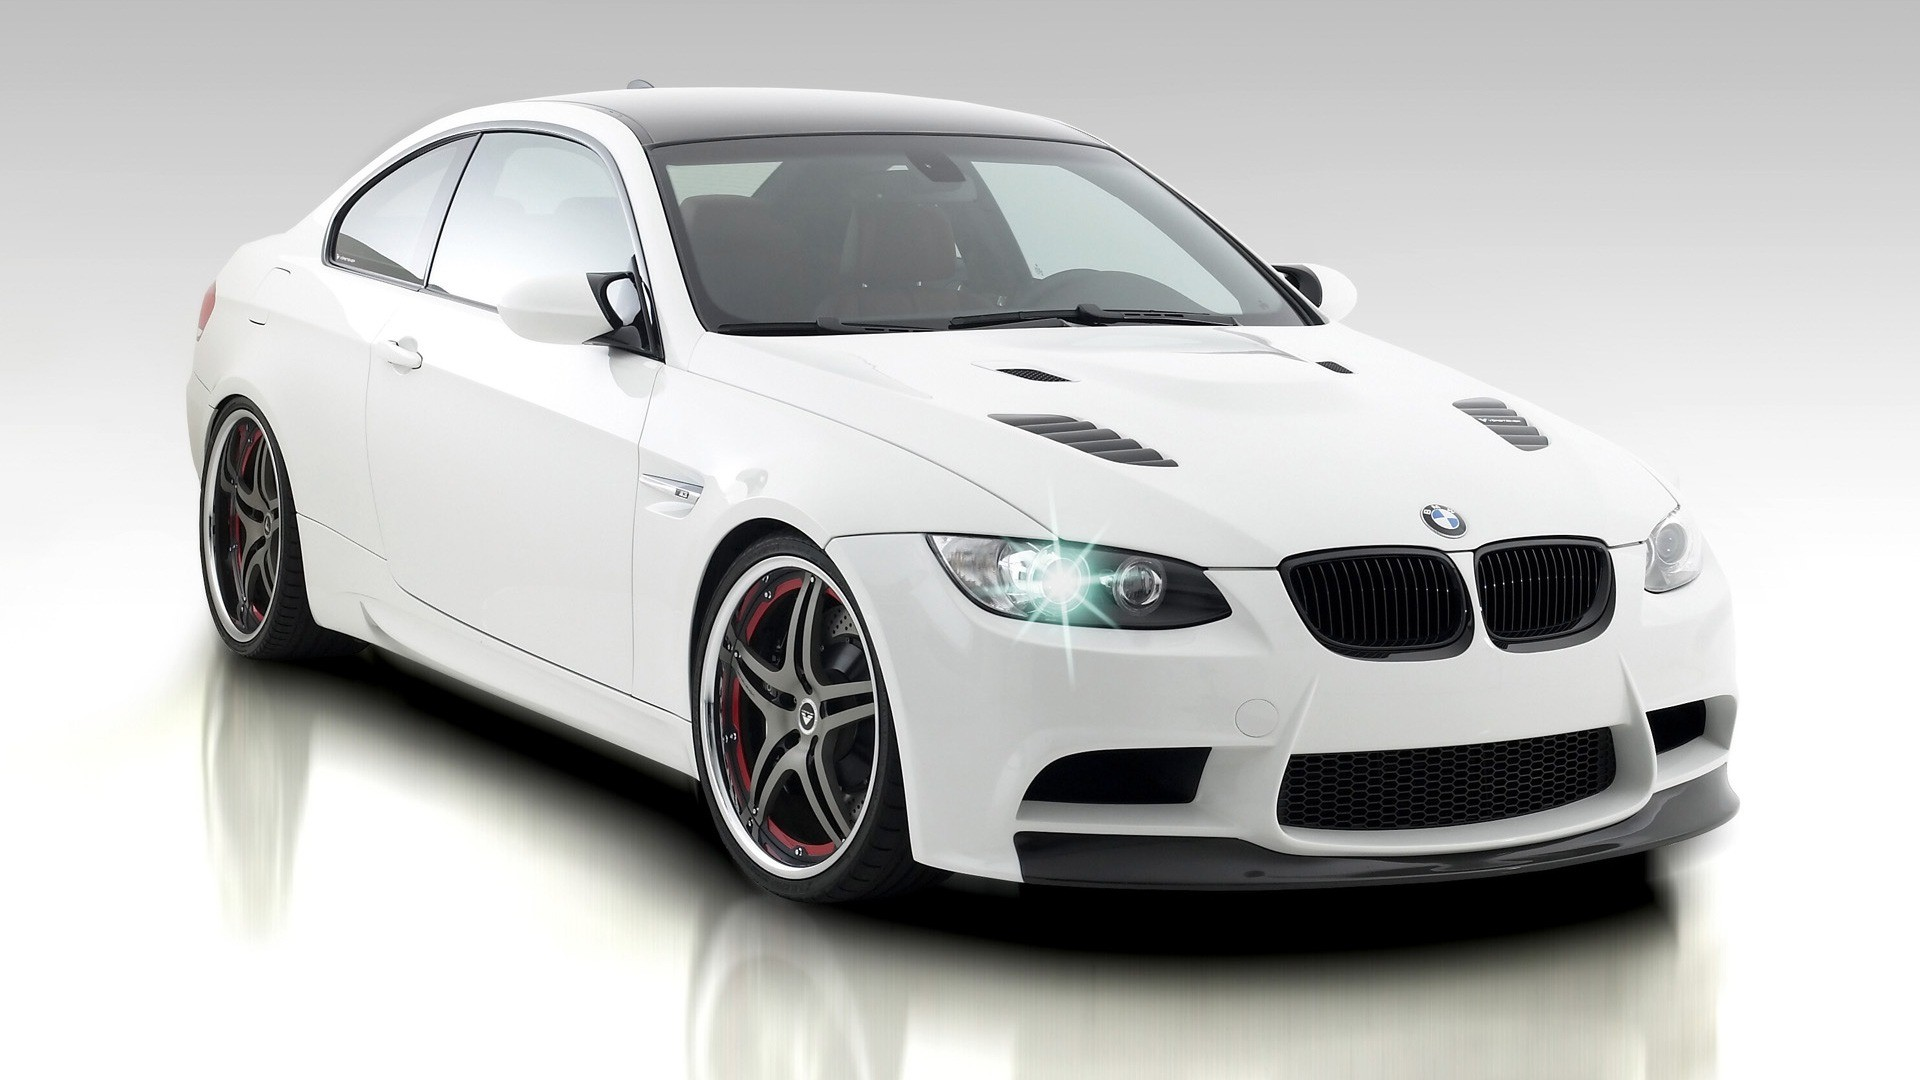 White BMW Photo